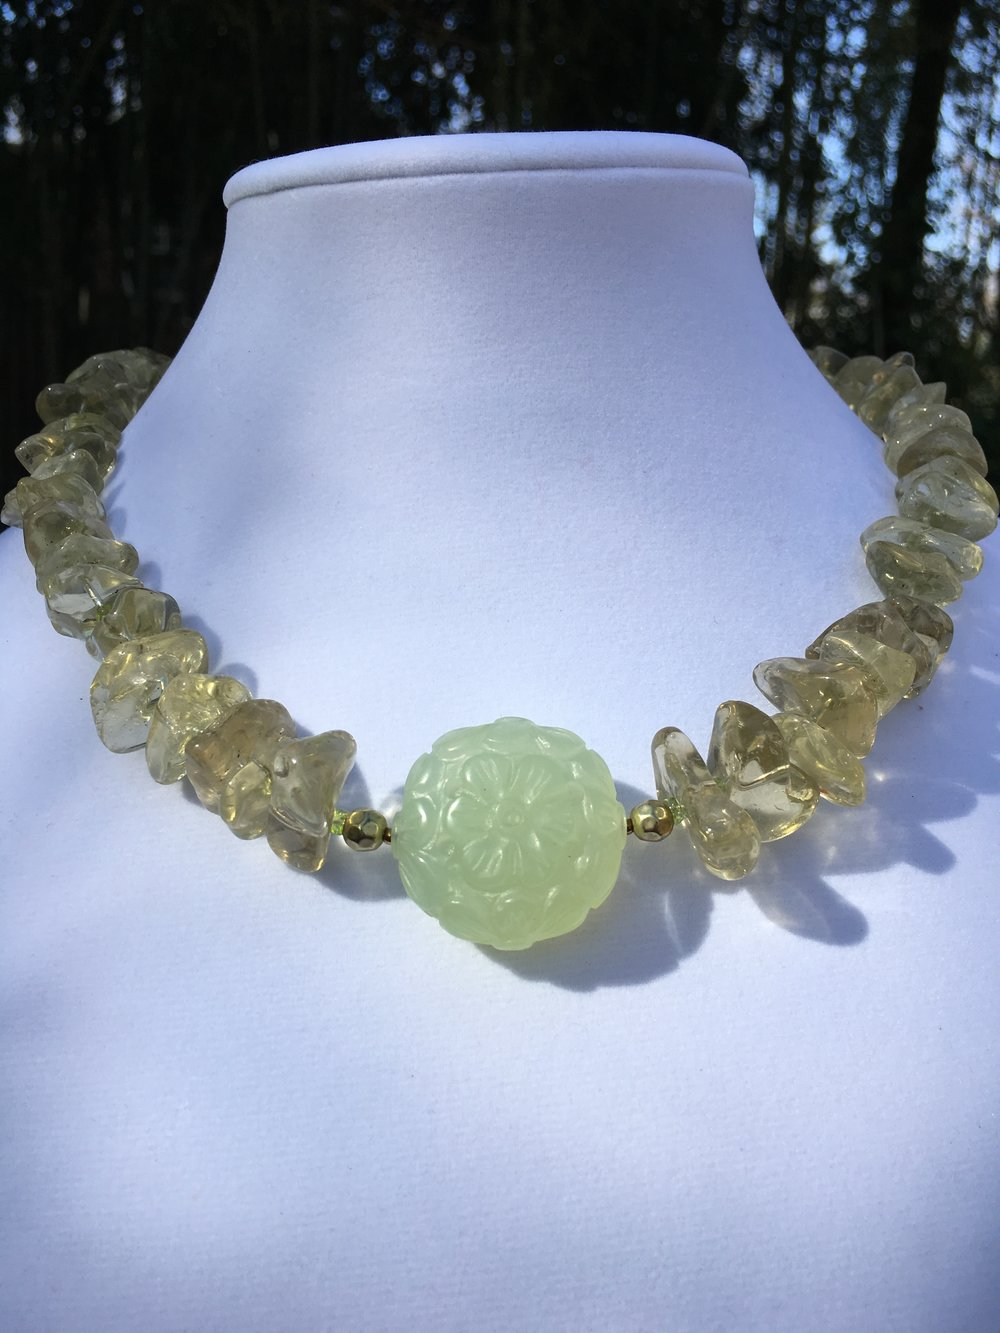 prehnite & cognac Quartz NECKLACE   30 mm round center carved prehnite bead, Cognac Quartz nugget beads, Peridot beads, gold filled clasp. 19 in. $150